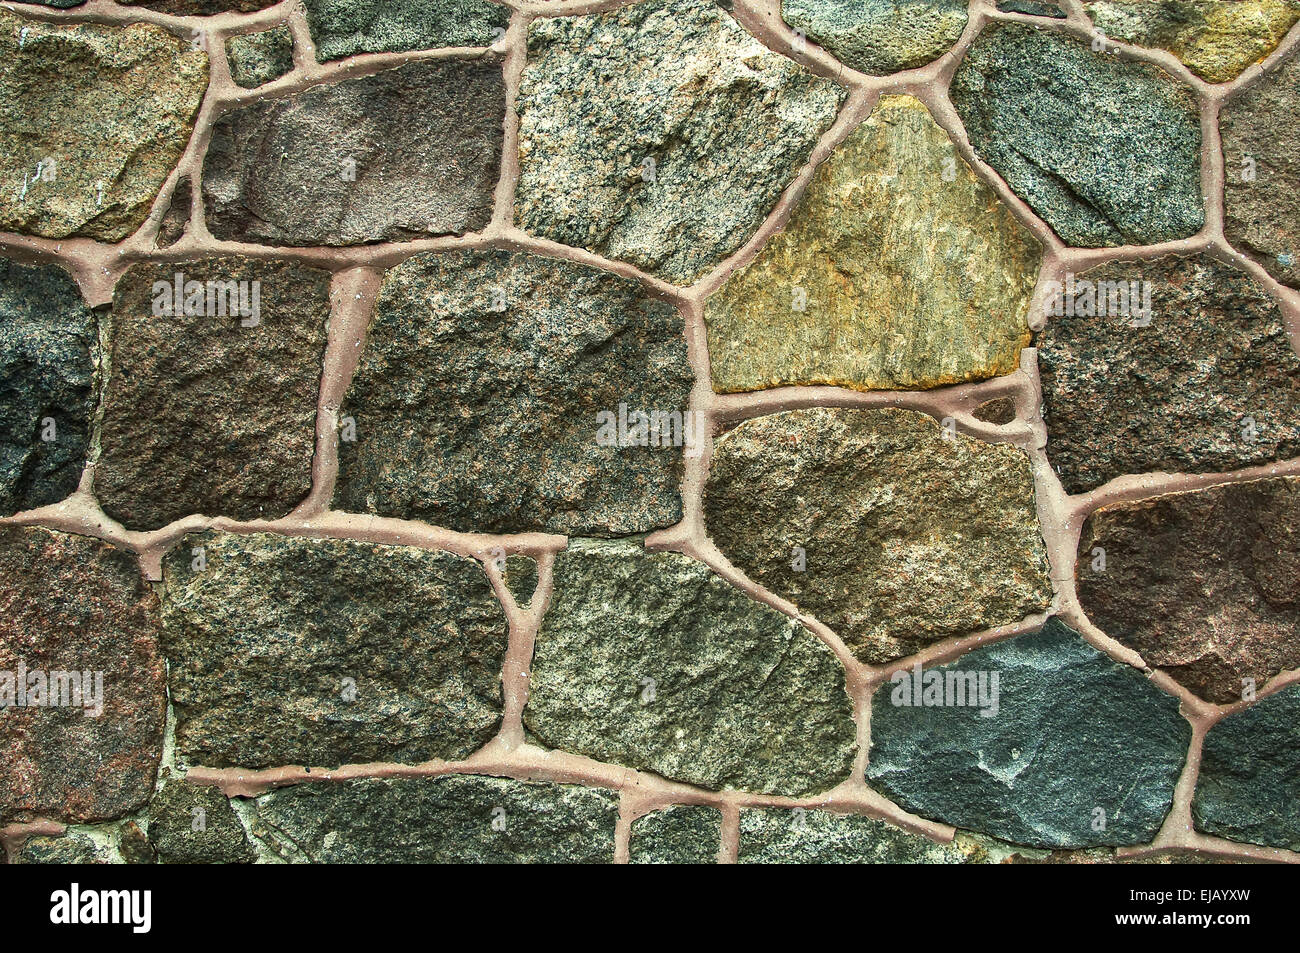 mur en pierre des champs banque d'images, photo stock: 80146721 - alamy